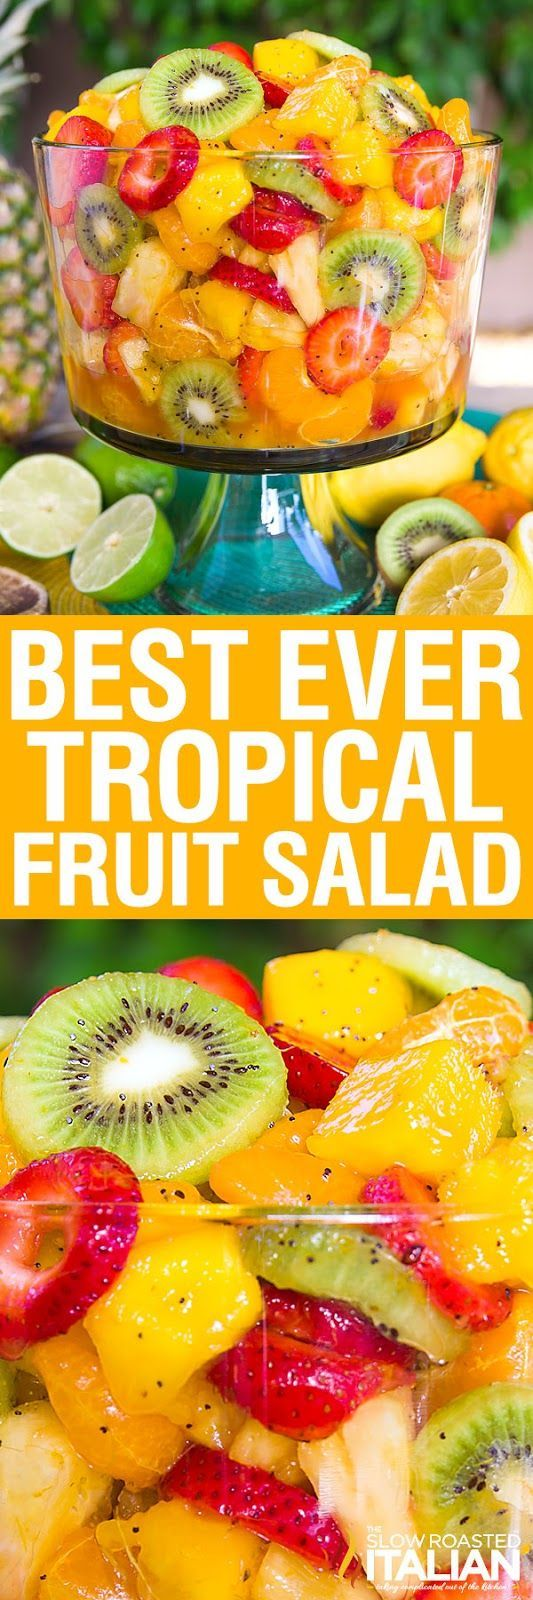 Best Ever Tropical Fruit Salad is the only recipe you'll ever need.  My entire picky family devoured this fruit salad. The dressing is truly magical. The combination of citrus juices with honey are phenomenal. Then we added a few special ingredients that give it a little nuttiness and a touch of zestiness to kick it up a notch. Perfec...